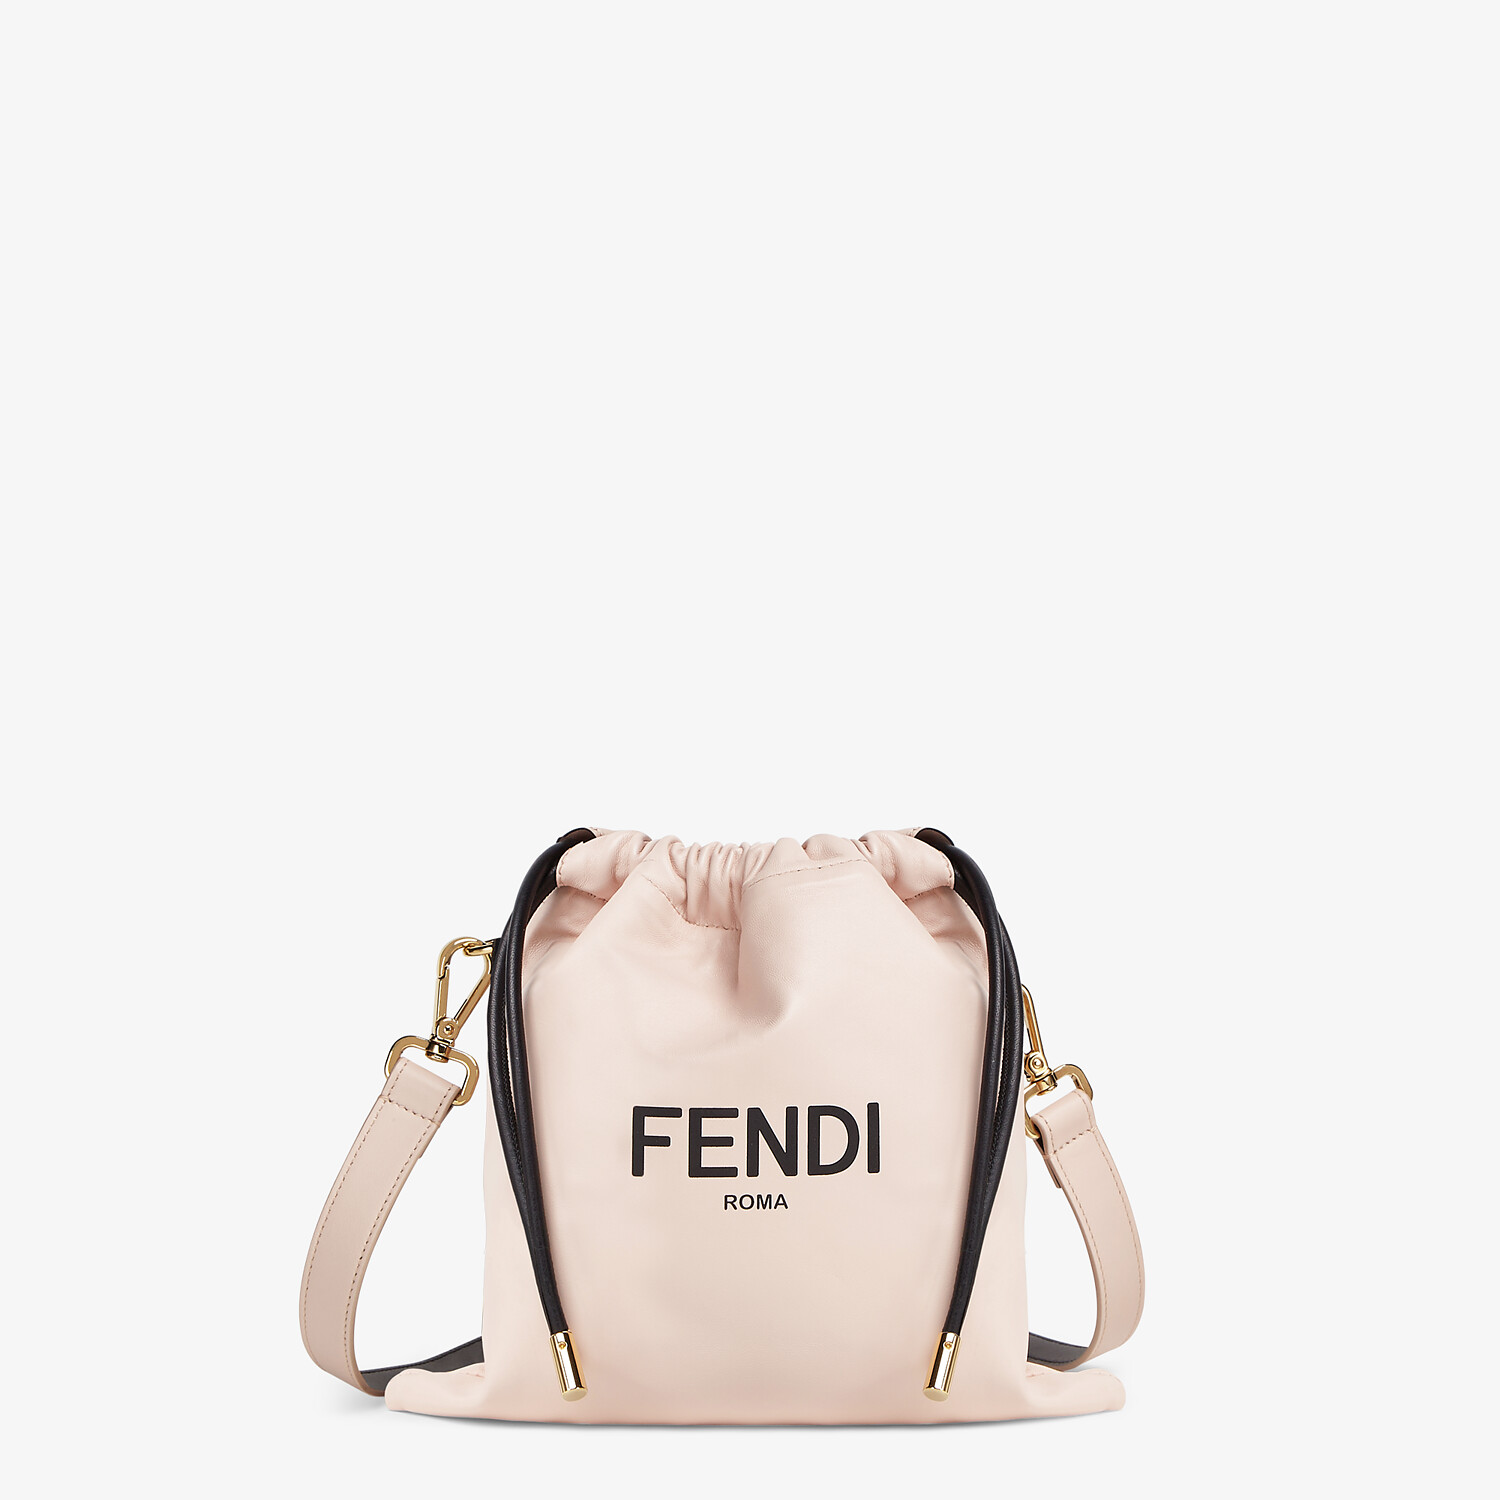 FENDI FENDI PACK SMALL POUCH - Pink nappa leather bag - view 1 detail